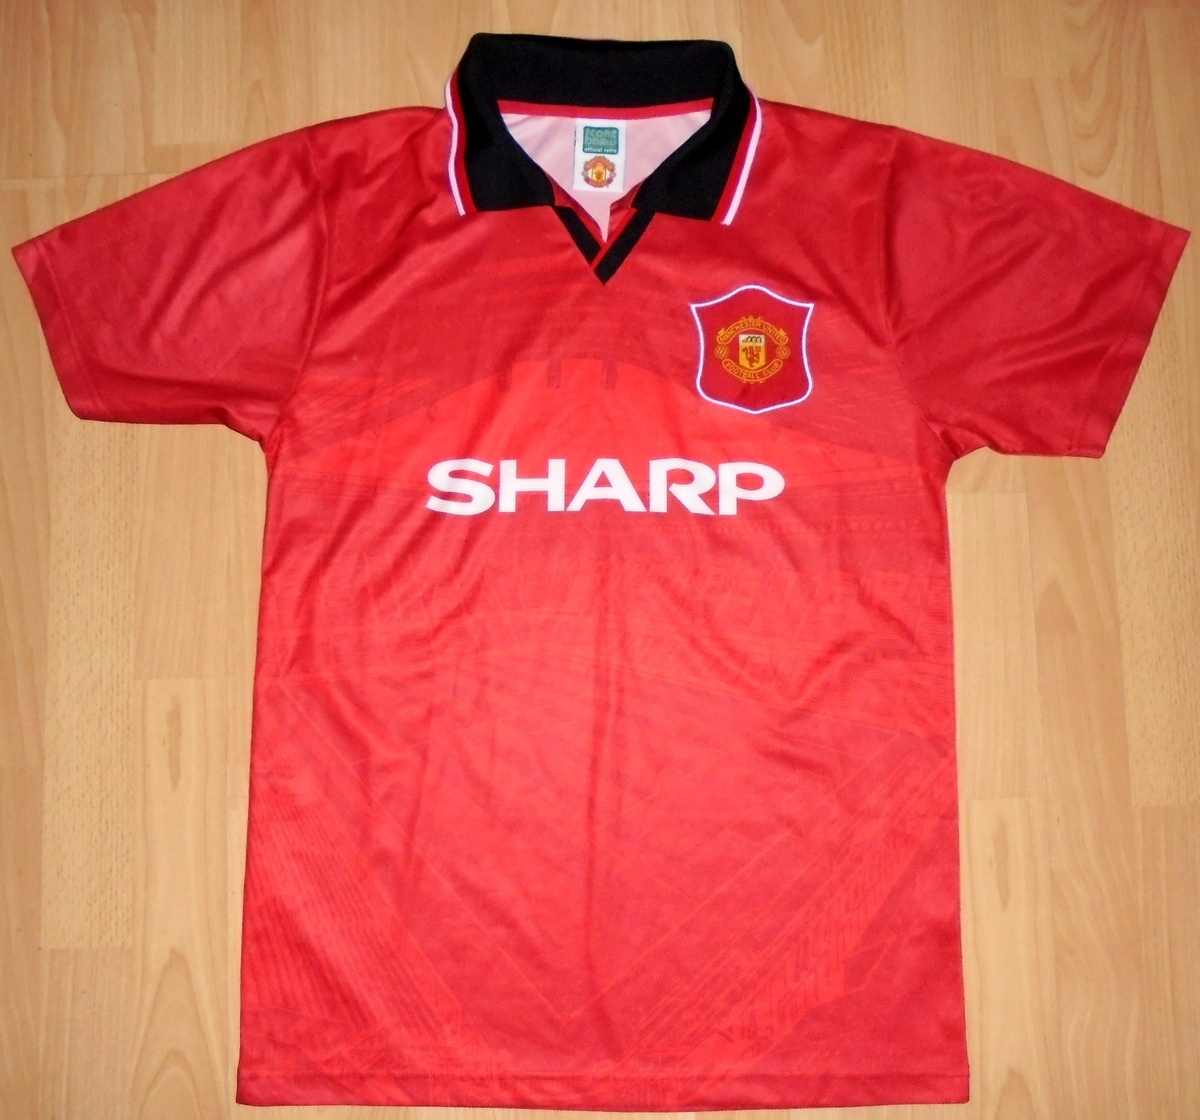 Koszulka Manchester United Sharp M Retro 1994/95